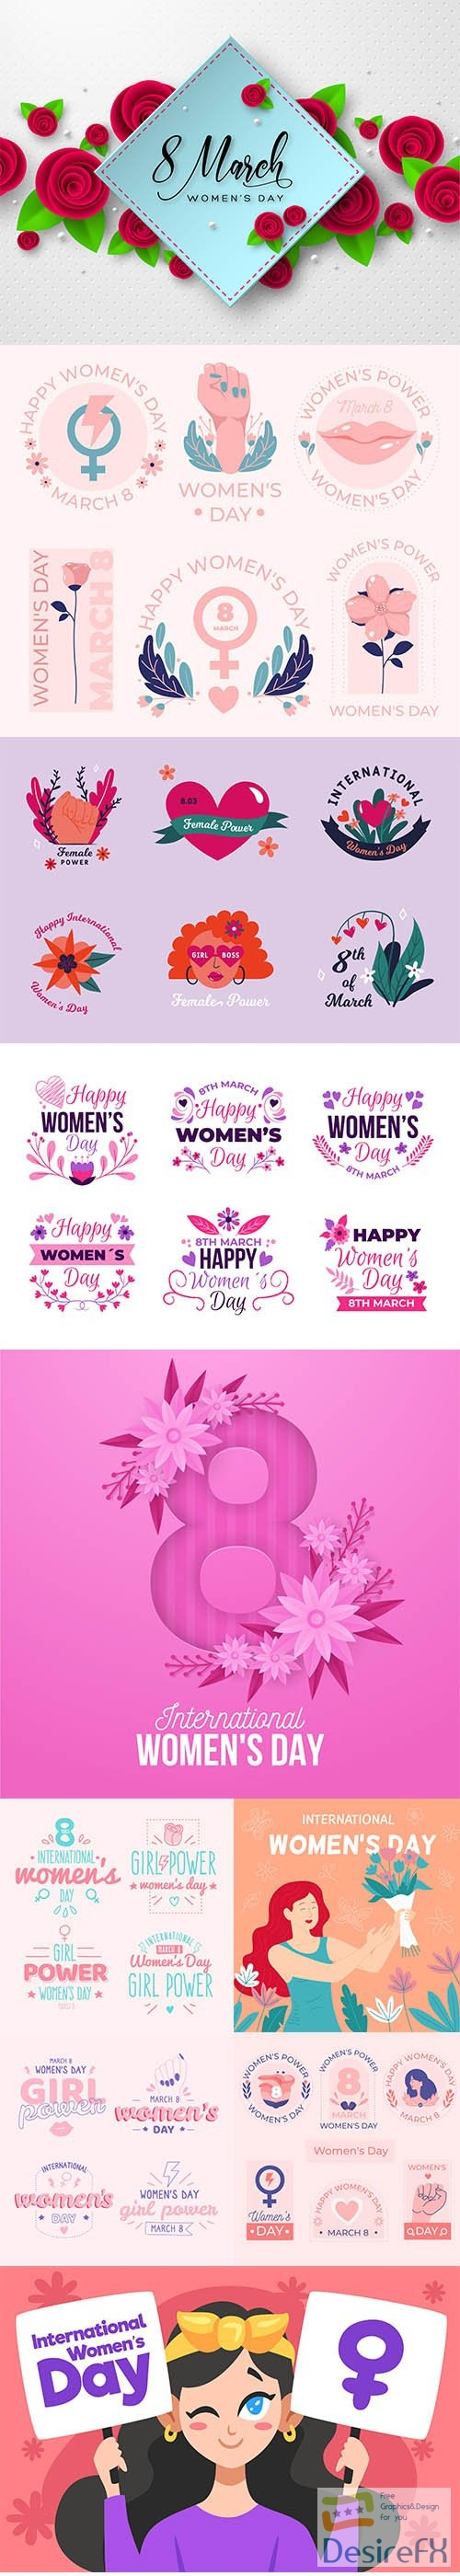 Hand-drawn international womens day illustration and badge collection